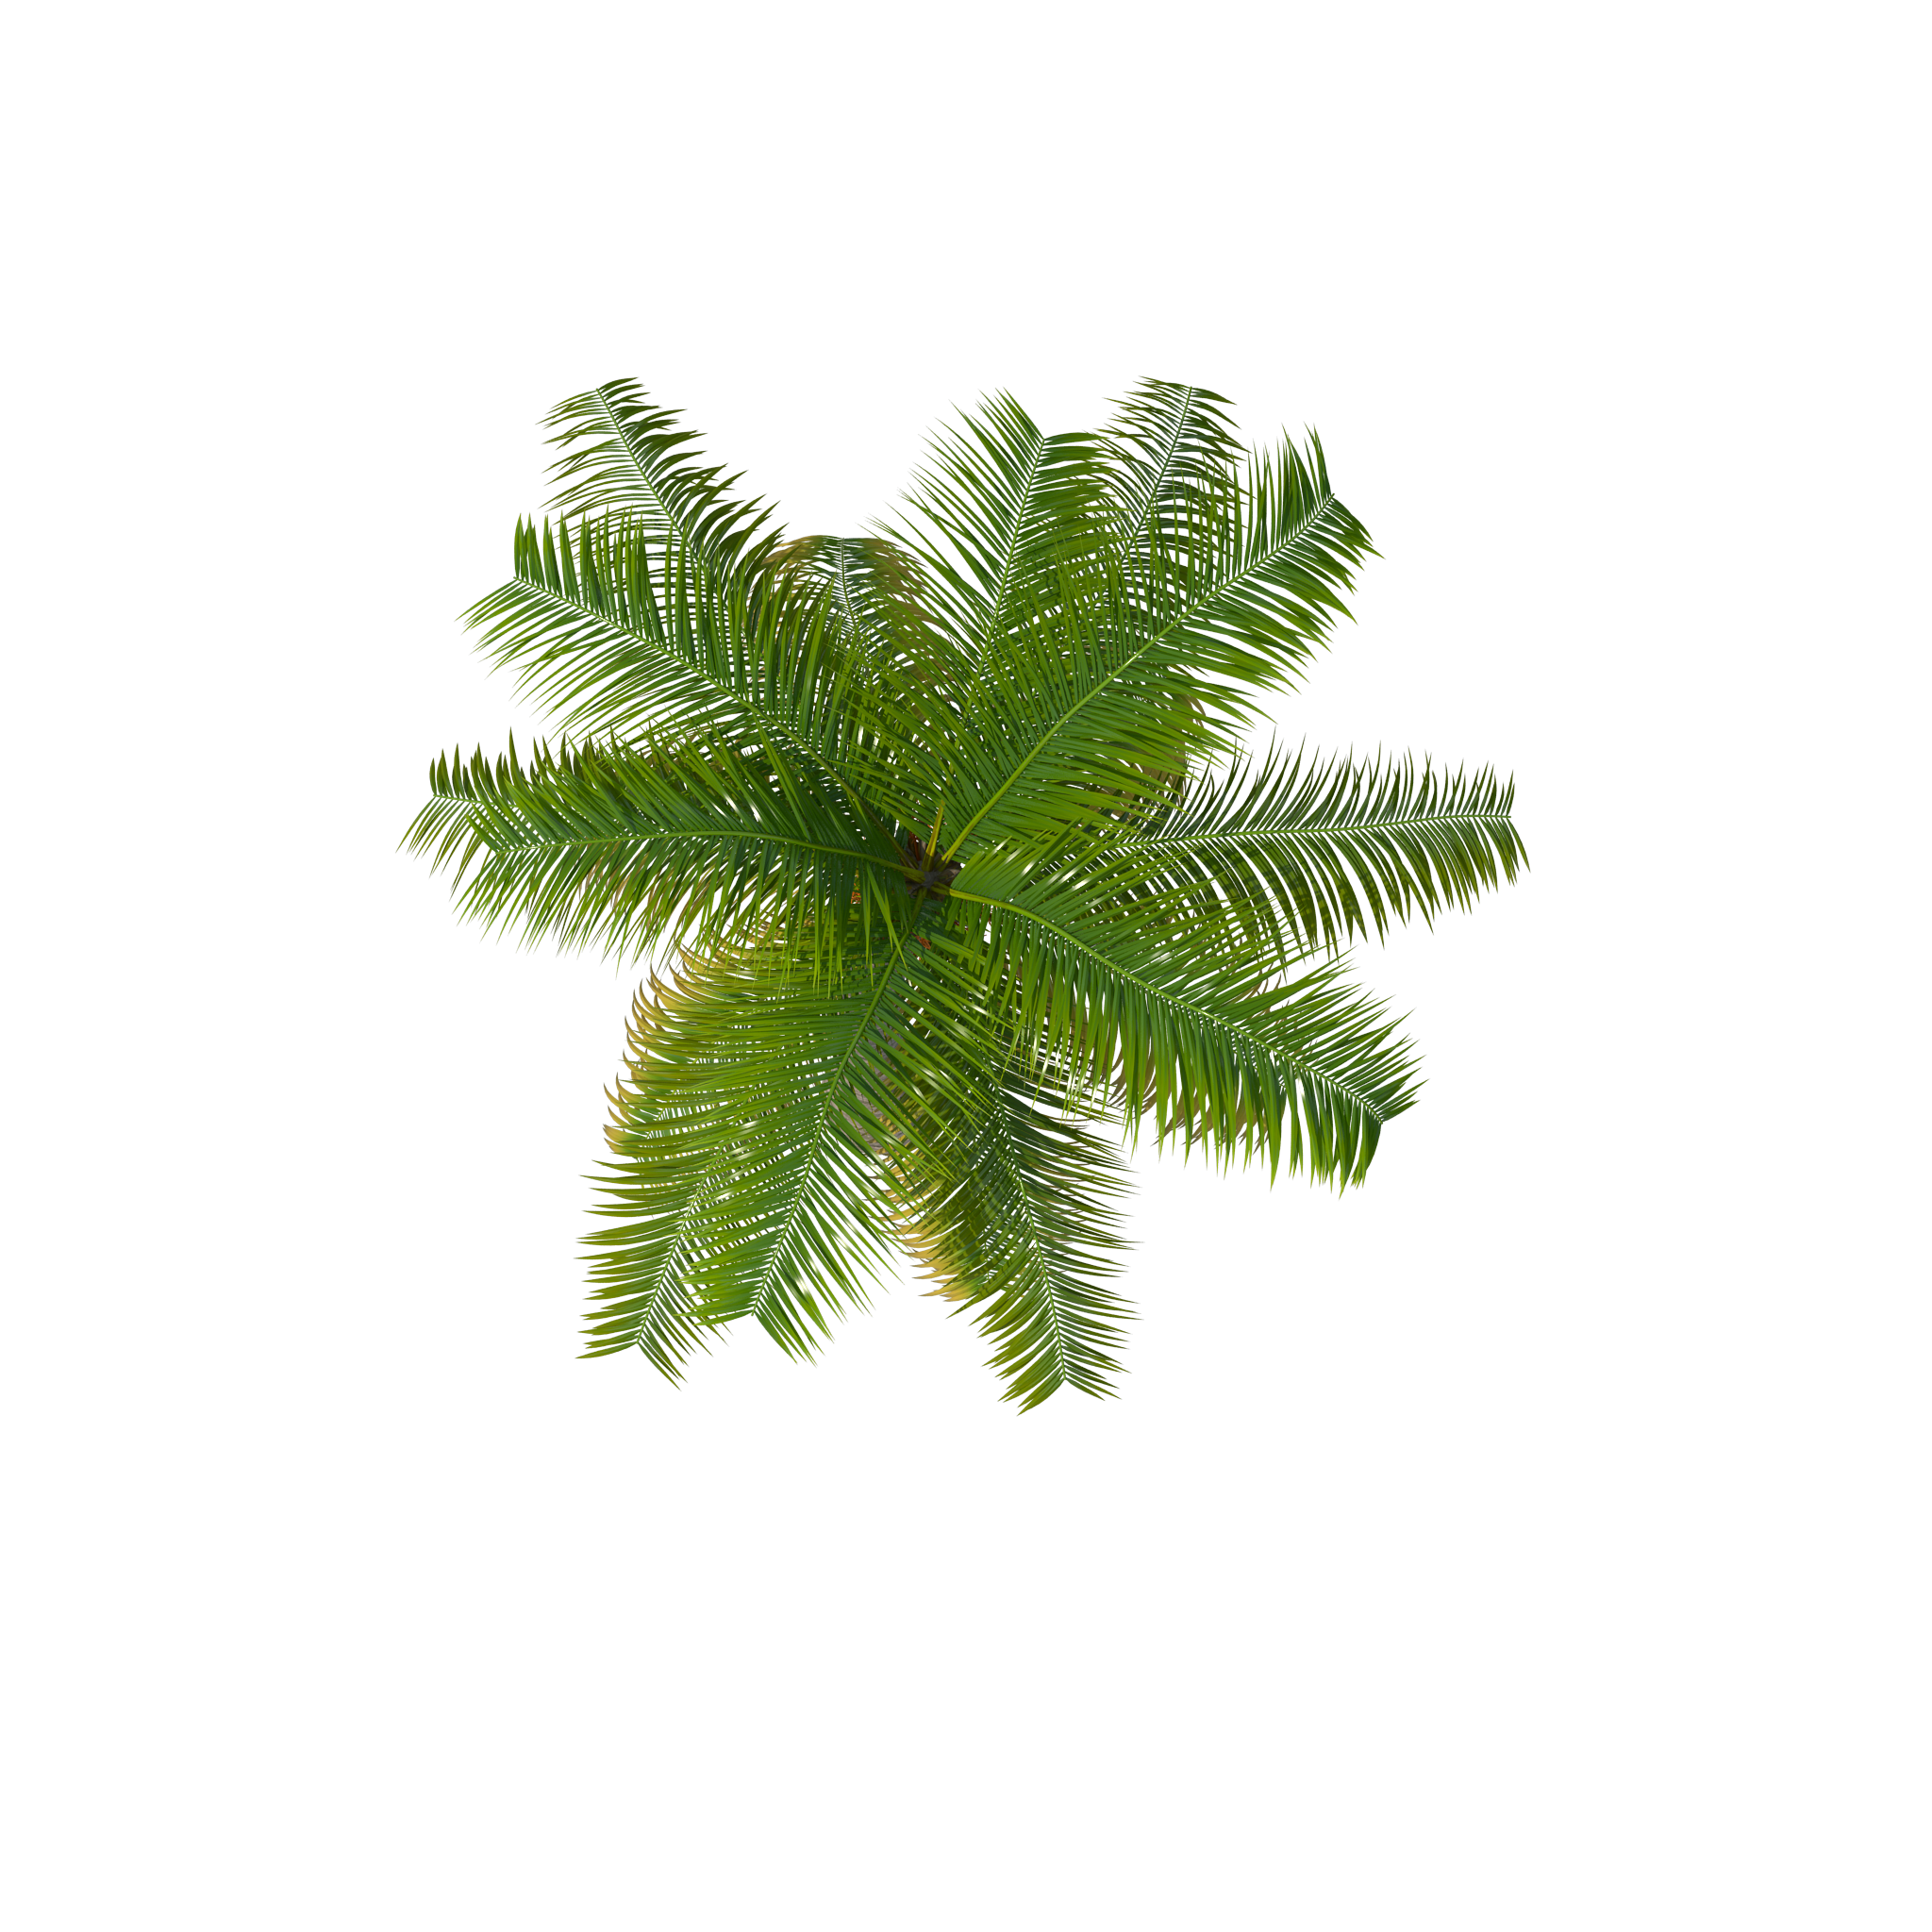 Flower Plant Top View Png Palm Tree Top Palm Tree Trees Top View Tree Tops